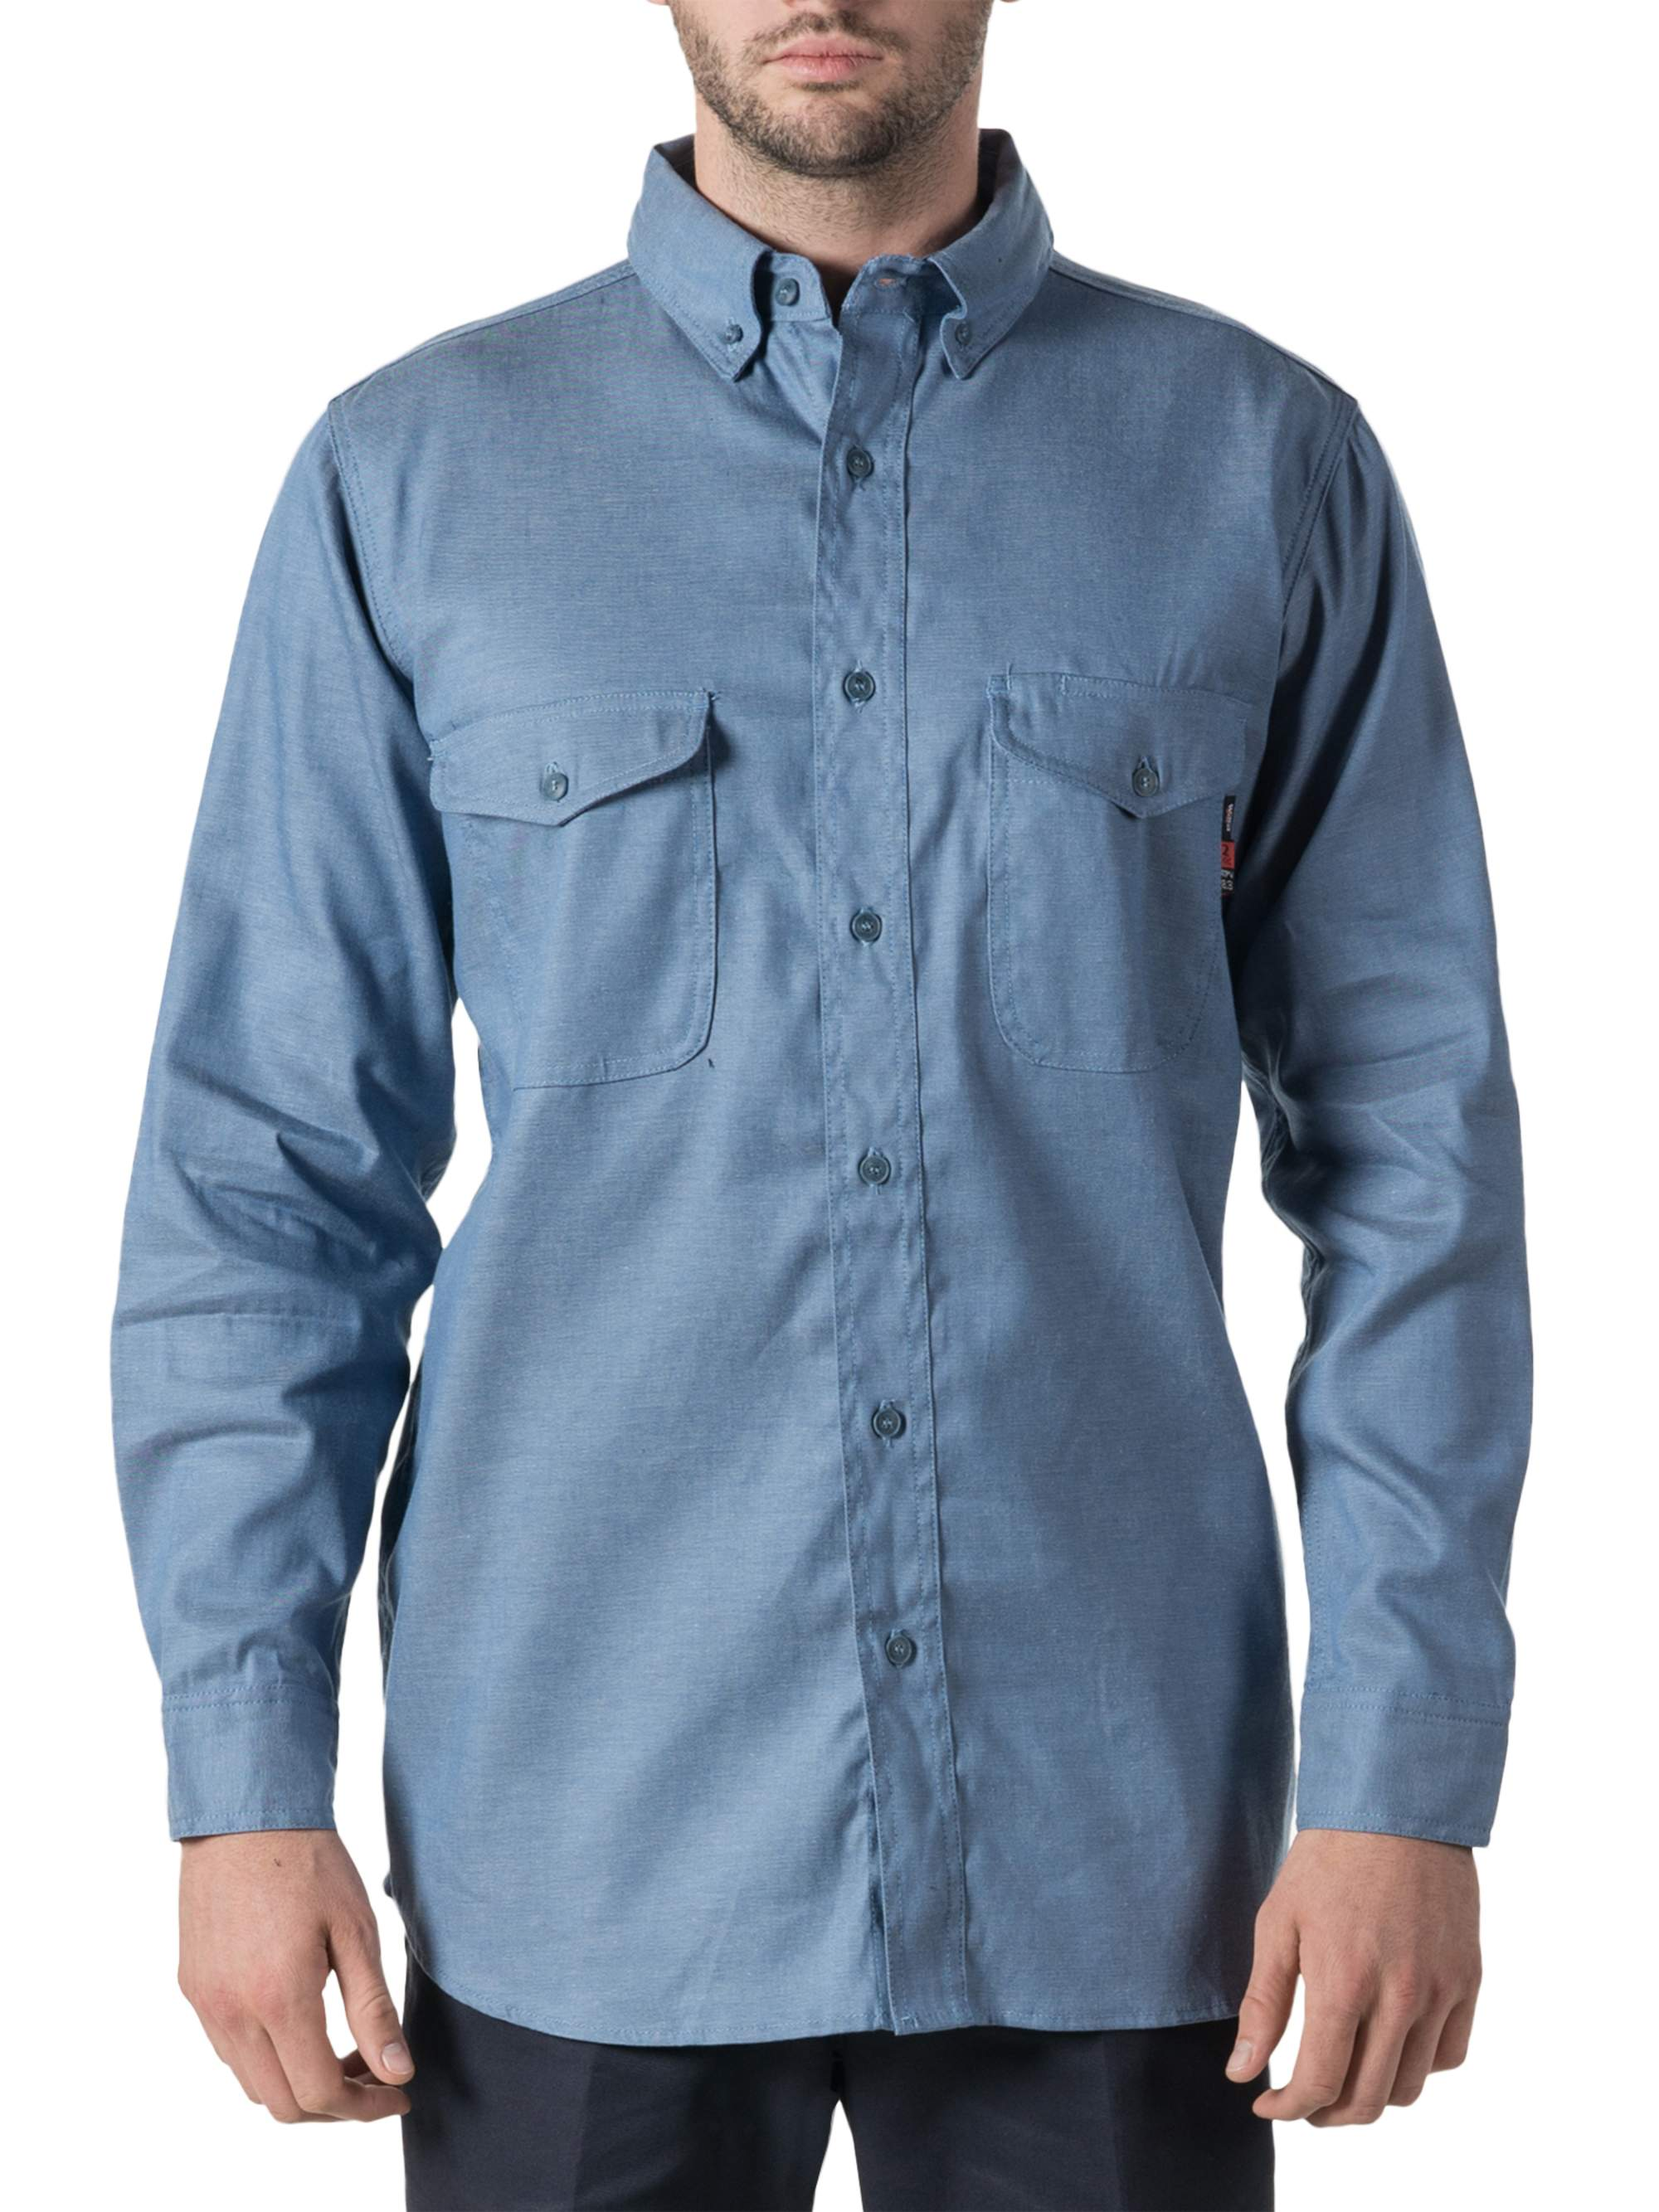 Men's Flame Resistant Woven Chambray Shirt, HRC Level 2